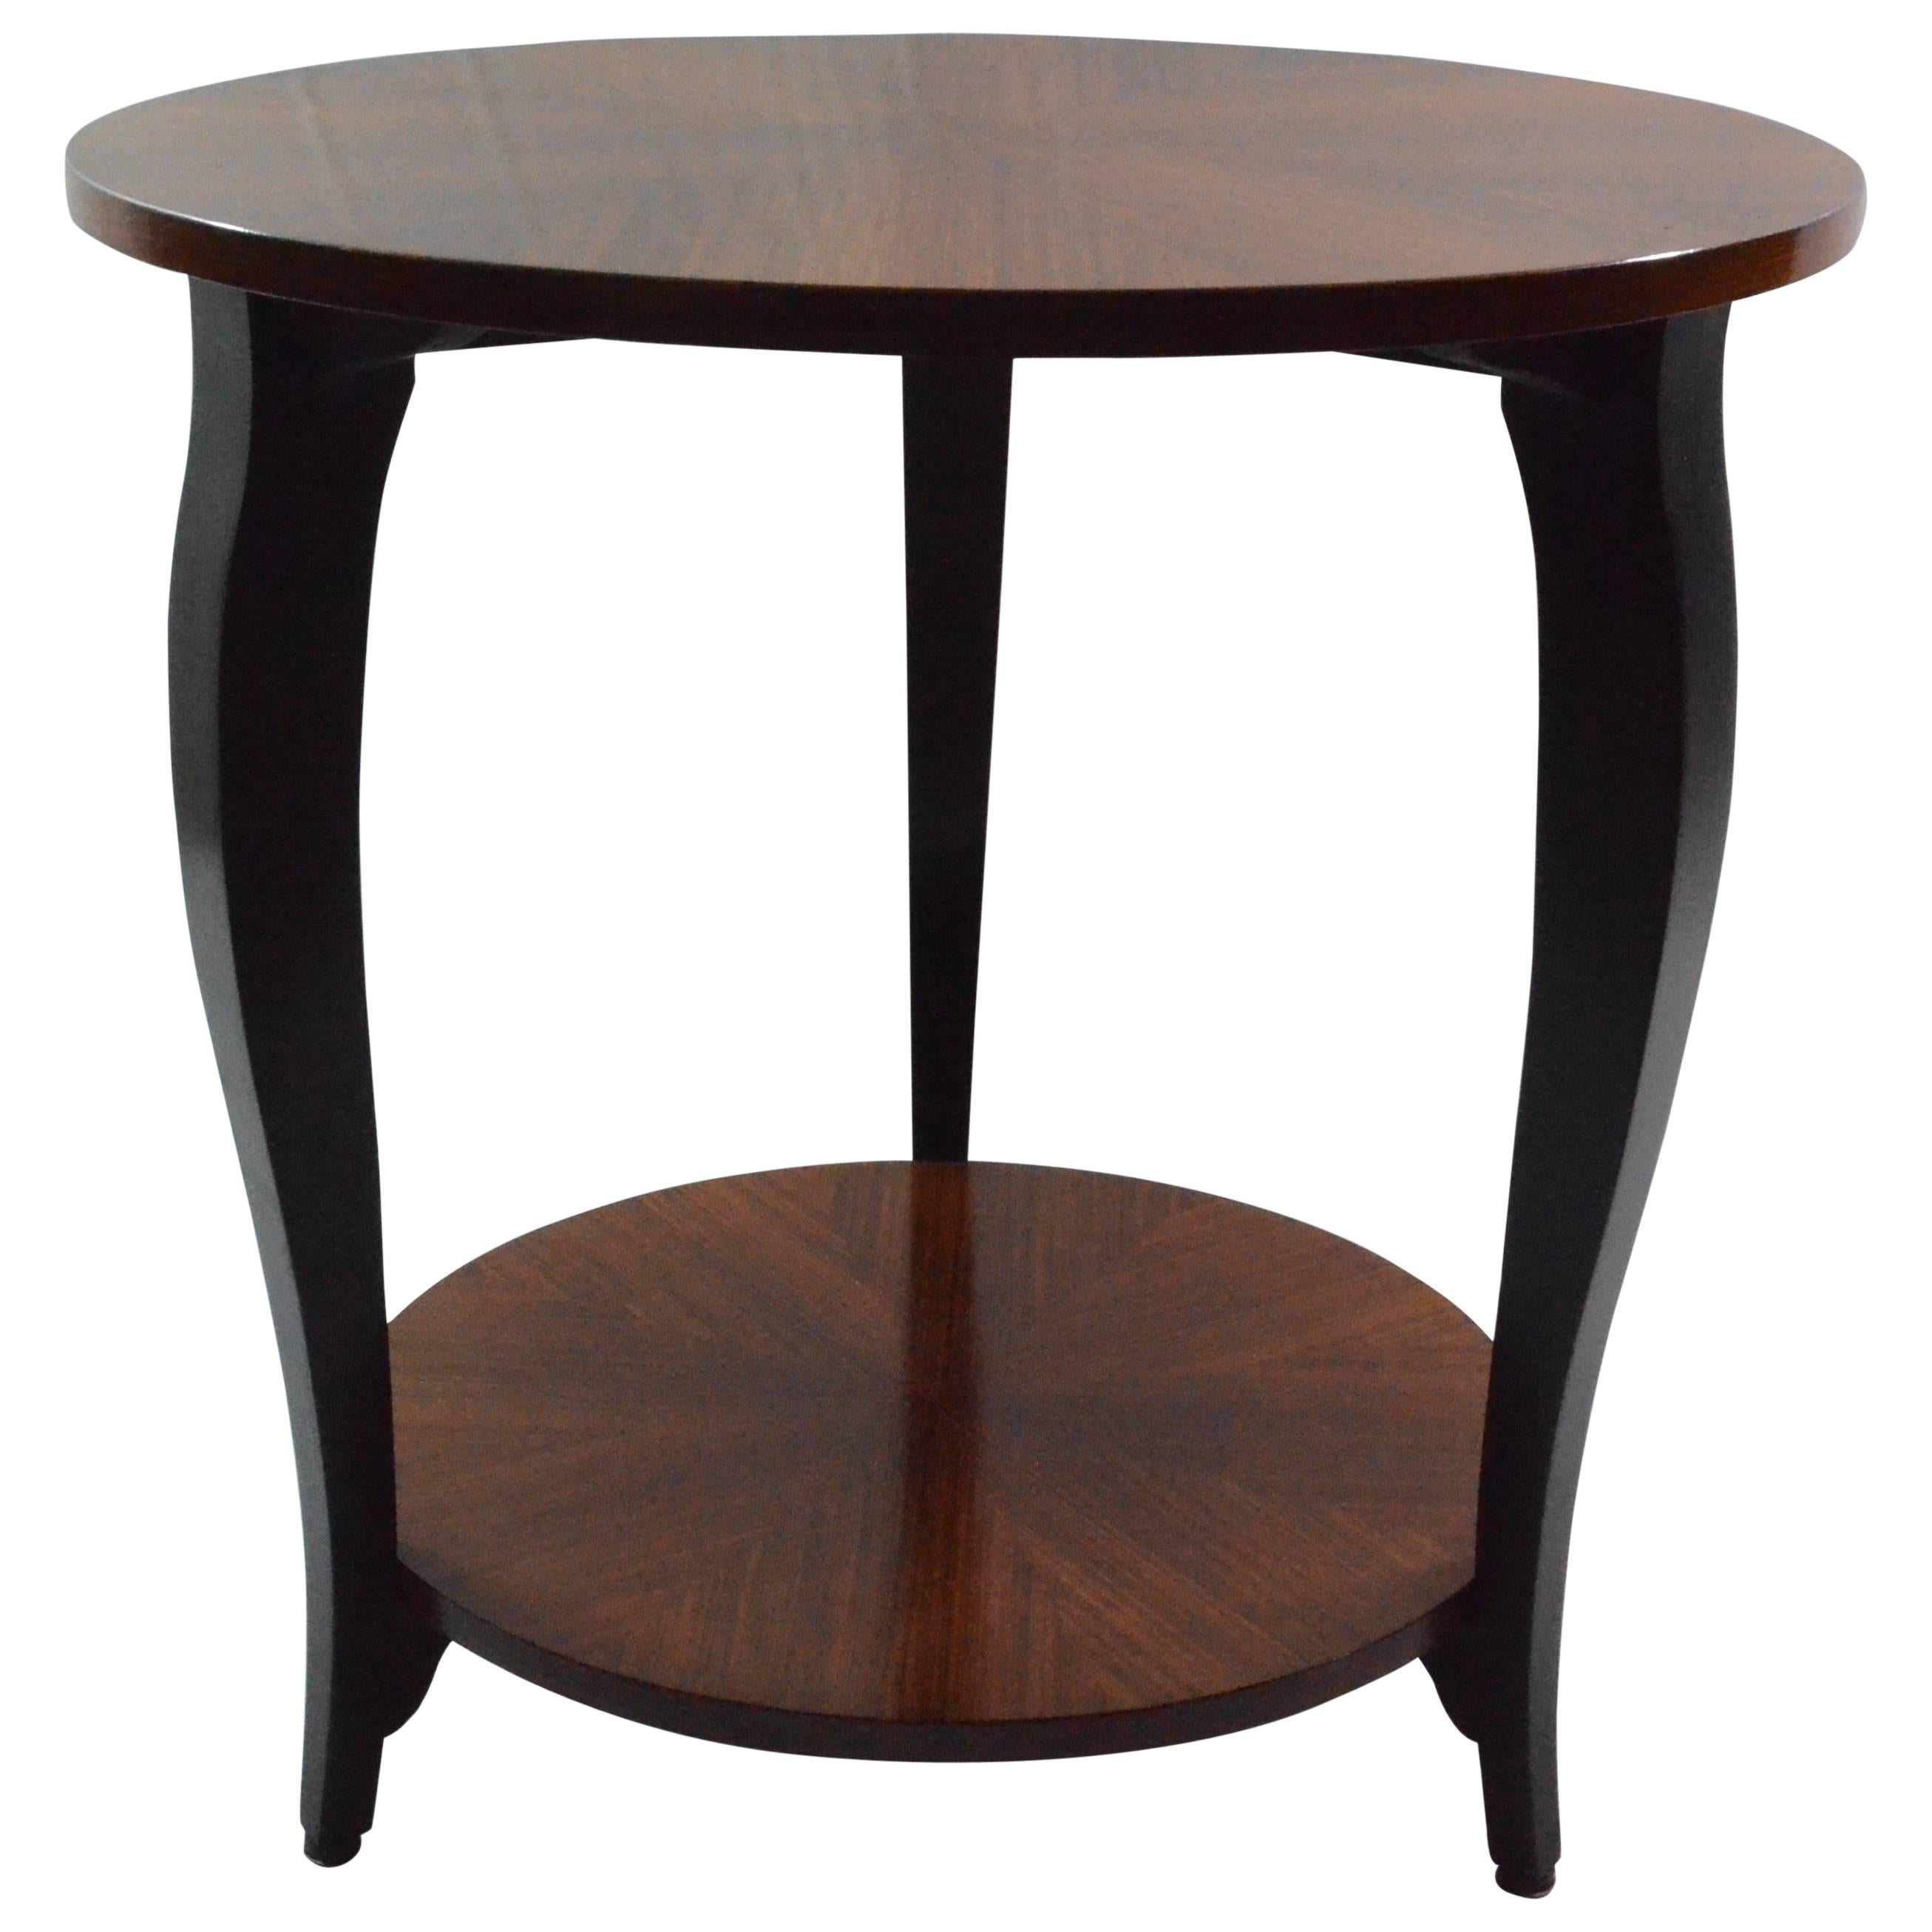 Art Deco Italian Veneered Wood And Black Details Rounded Small Sofa Table